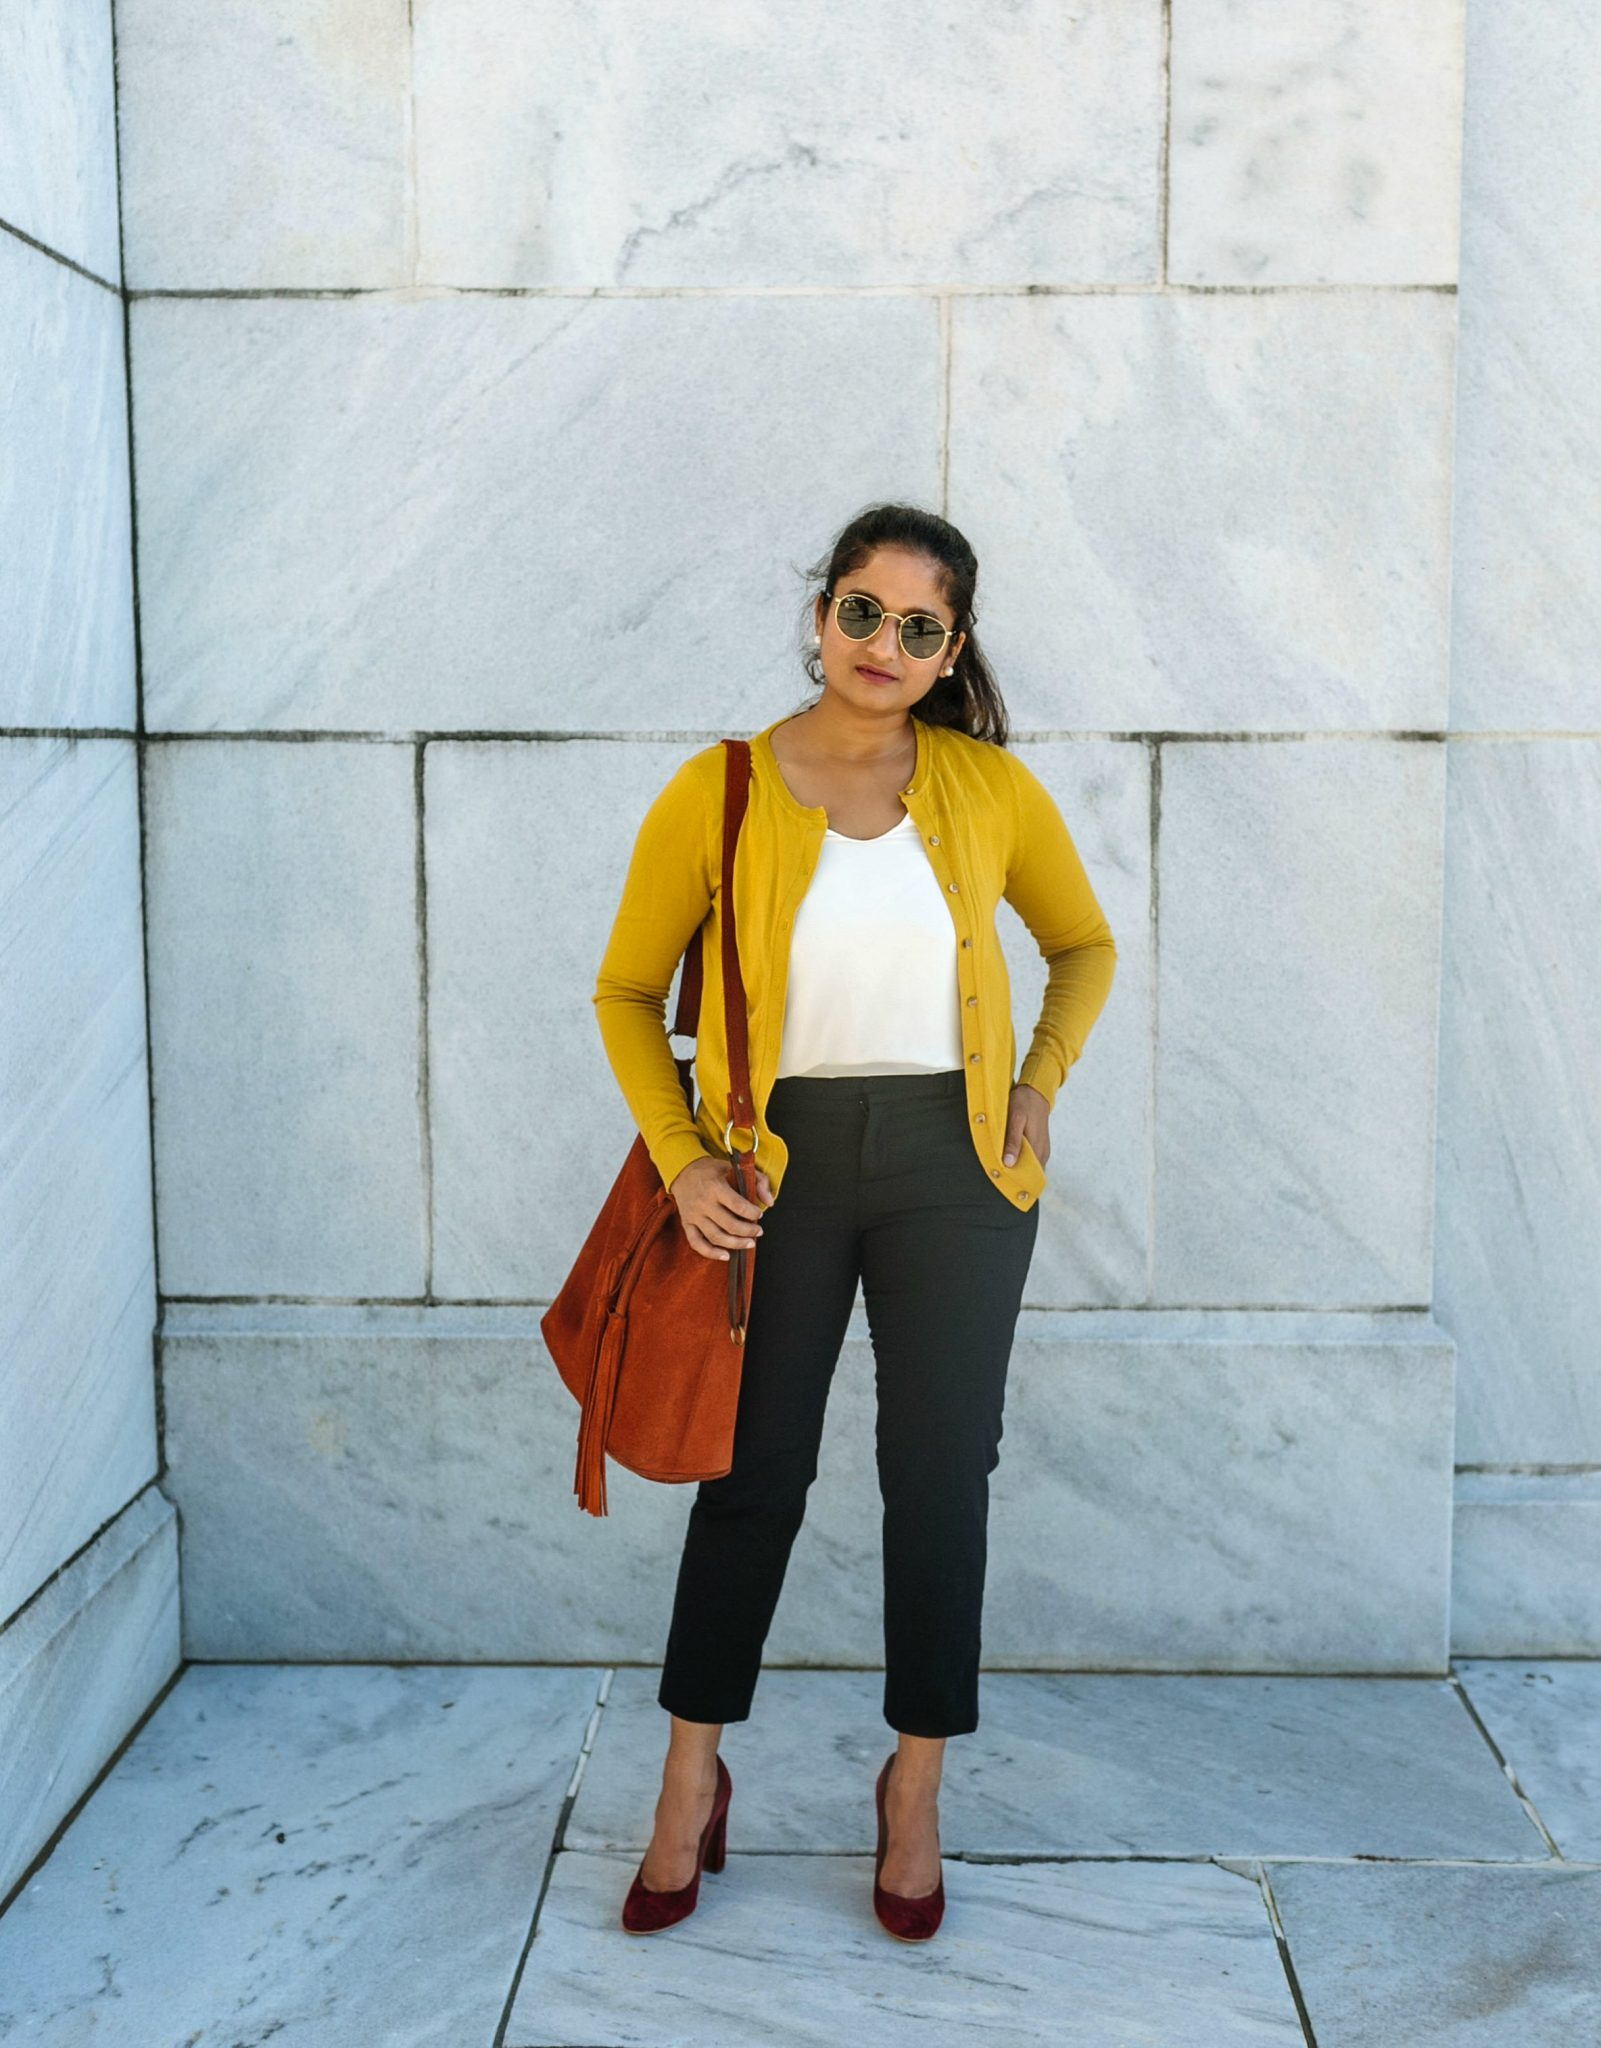 wearing Banana Republic Sloan Skinny-Fit Solid Ankle Pant in black | Colorful Fall Work Outfits featured by popular Ohio modest fashion blogger, Dreaming Loud